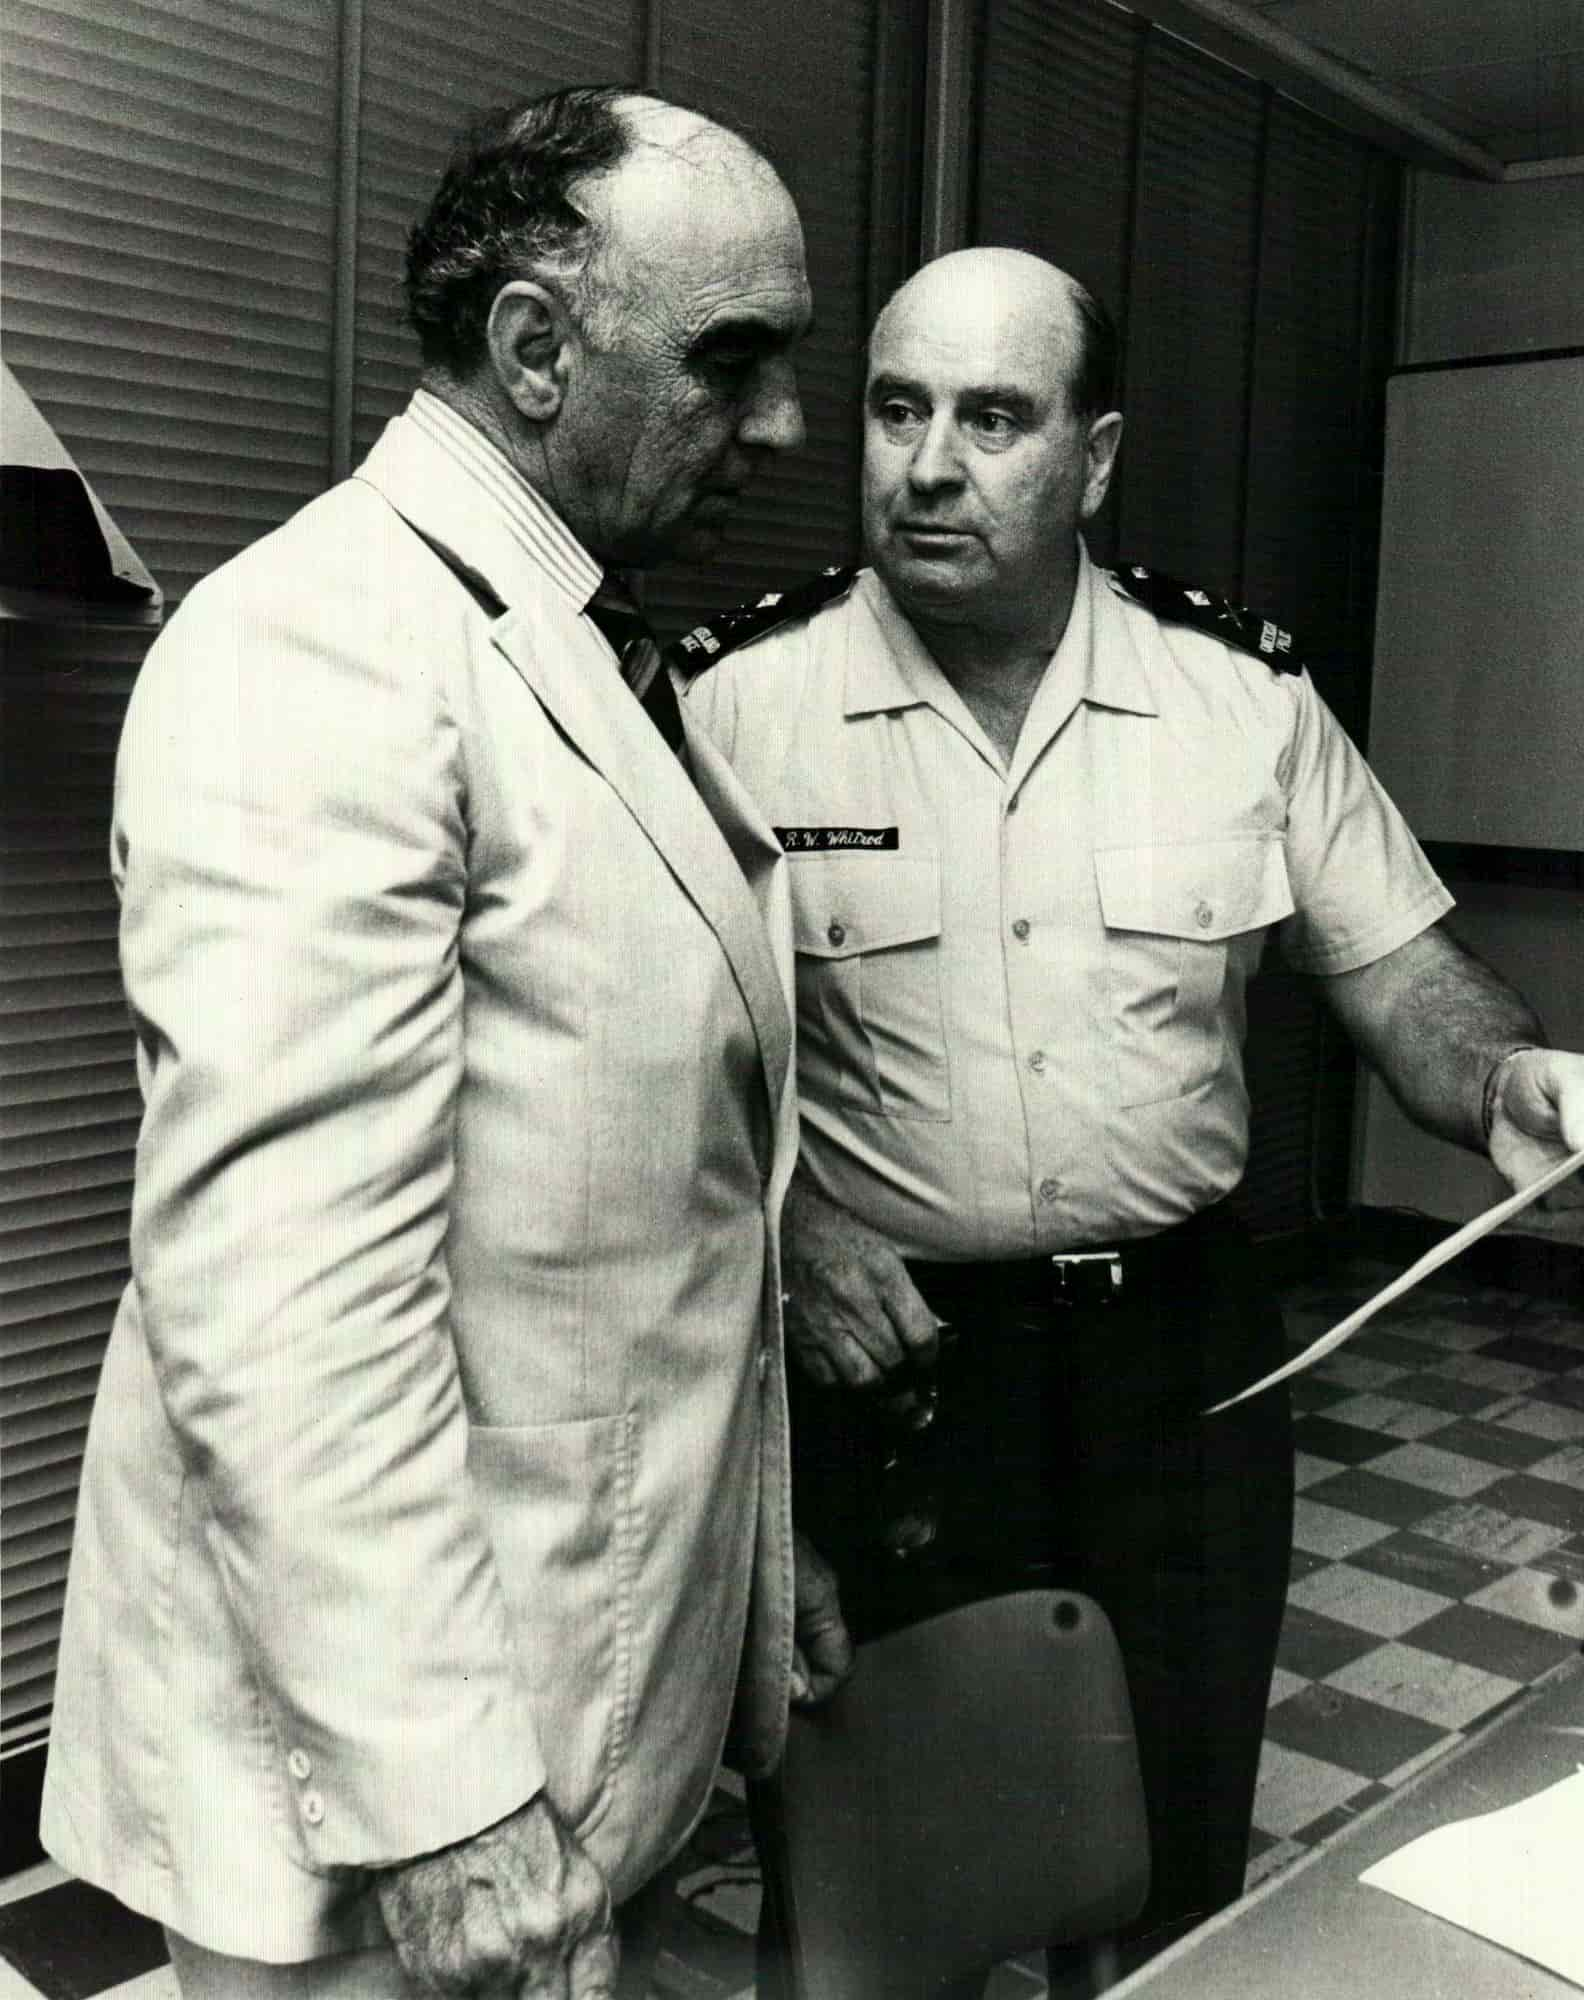 Journalist Brian Bolton warned Commissioner R. Whitrod (right) of the plans to firebomb the Whiskey Au Go Go, but Queensland Police didn't listen.